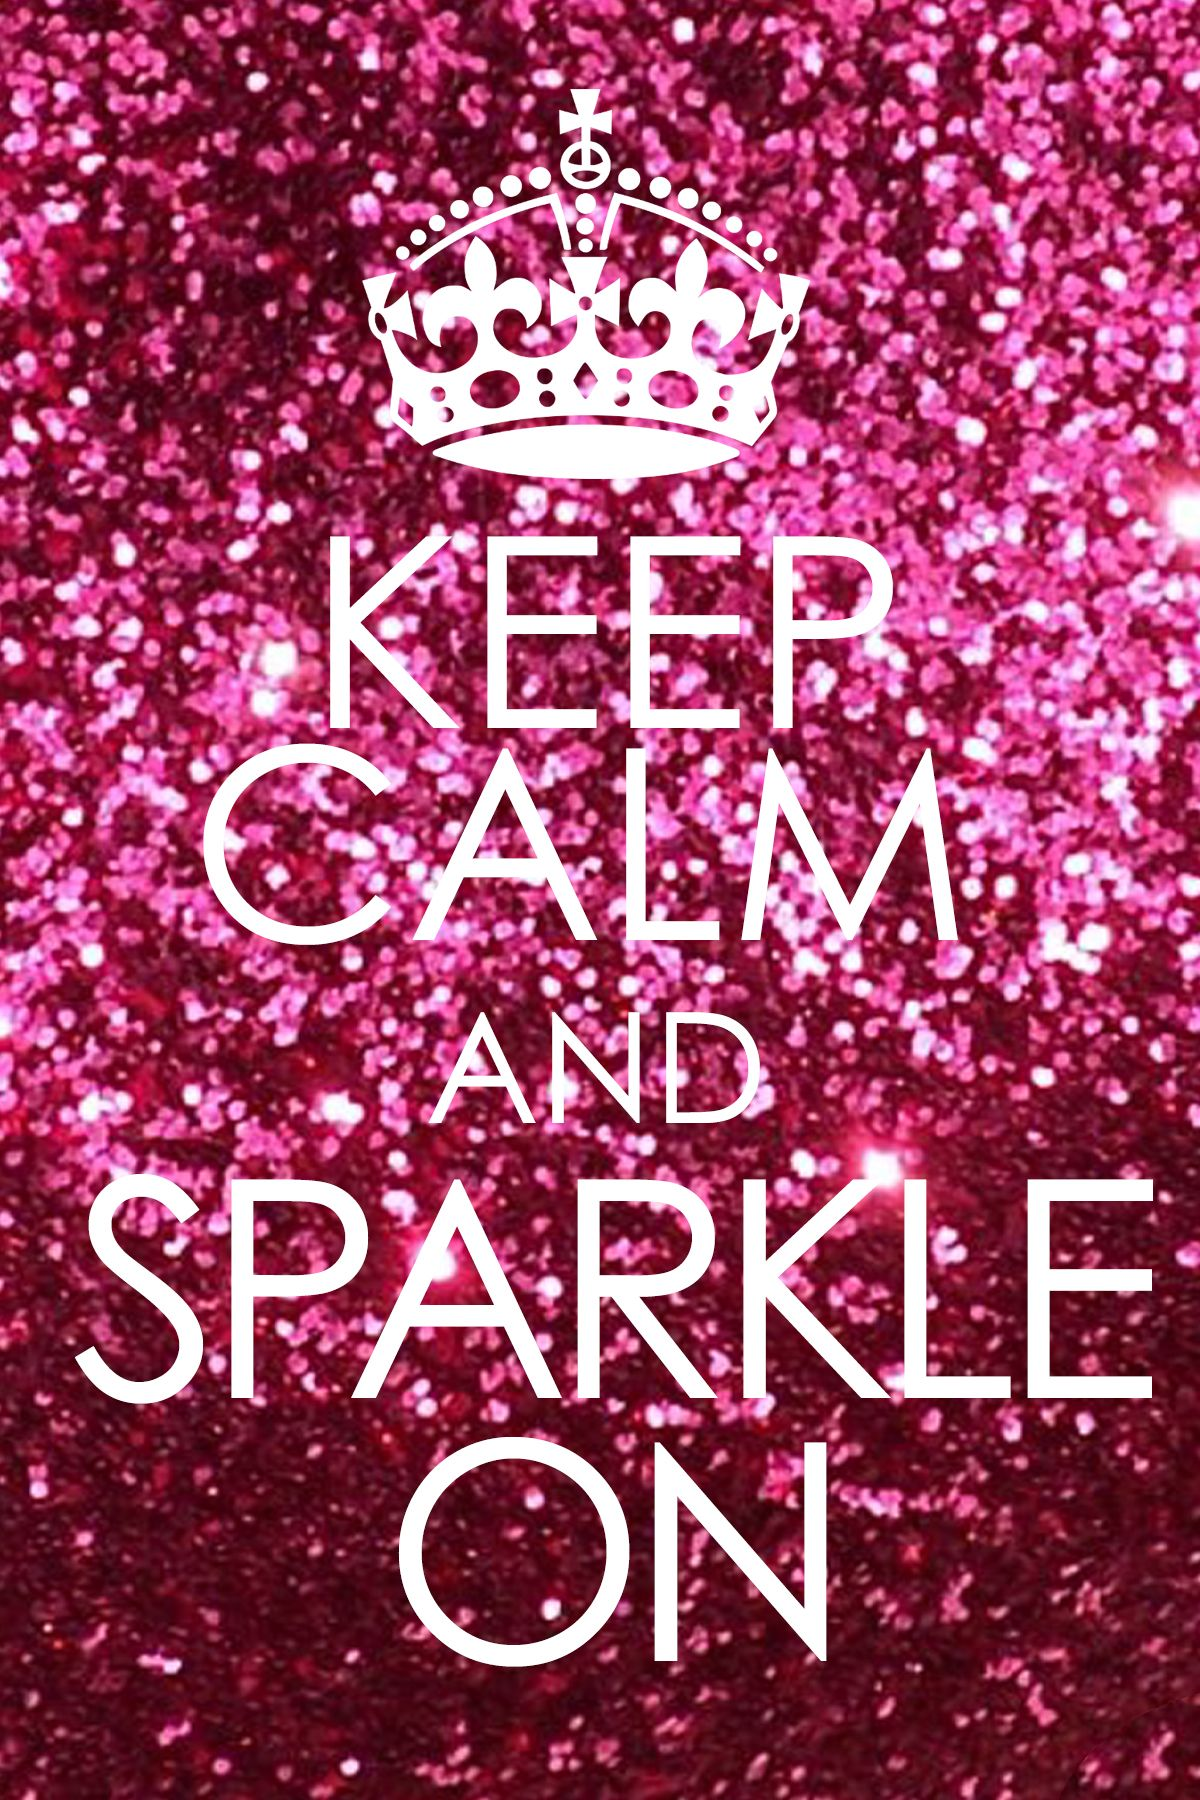 There is nothing better than having a sparkle especially